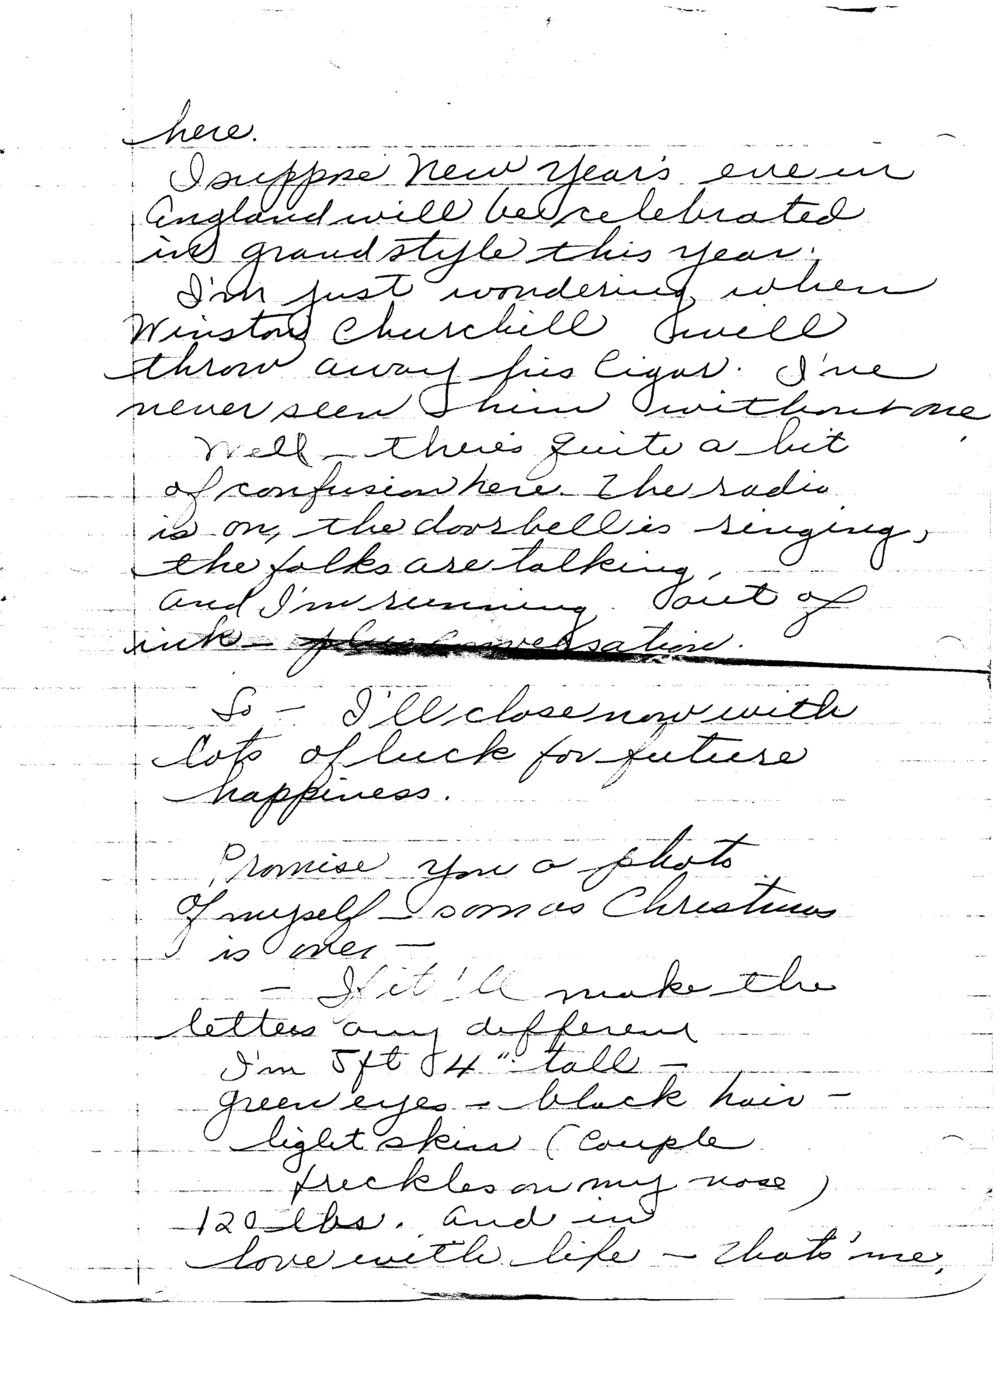 Ruth to Bob, Letter 5, December 20, 1945, page 6 of 6